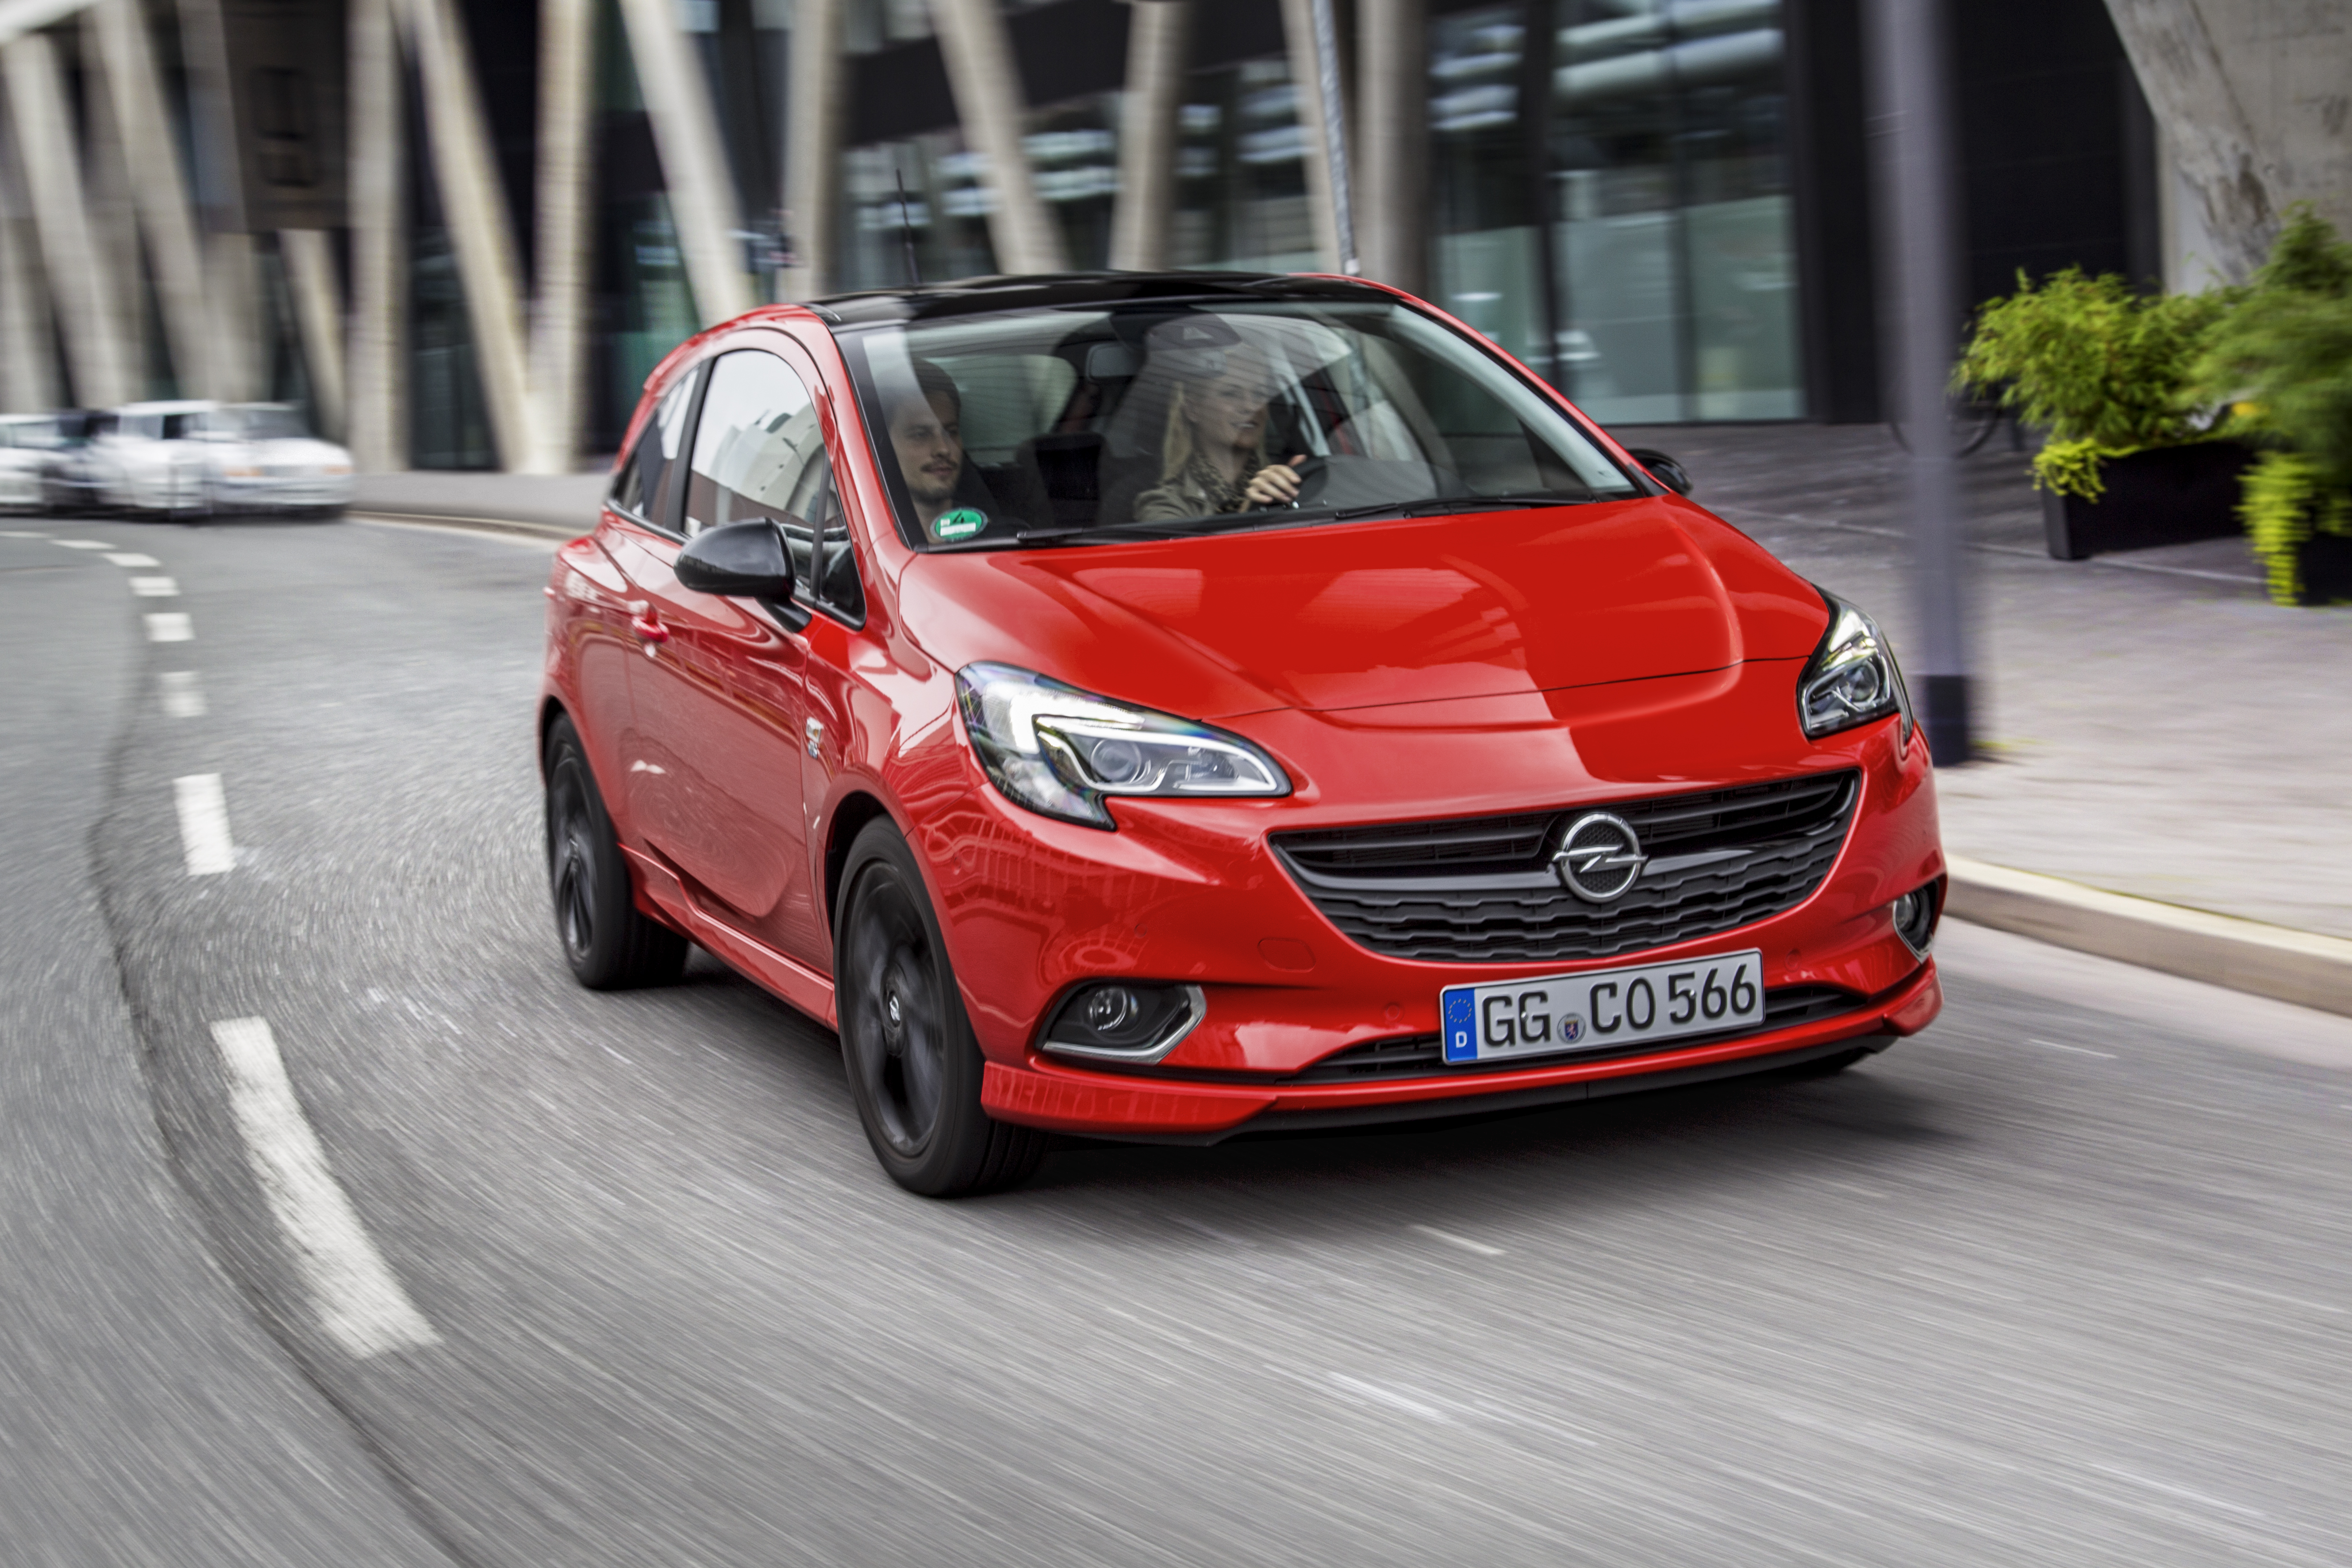 2015 Opel Corsa | Reviews | Ignition Live